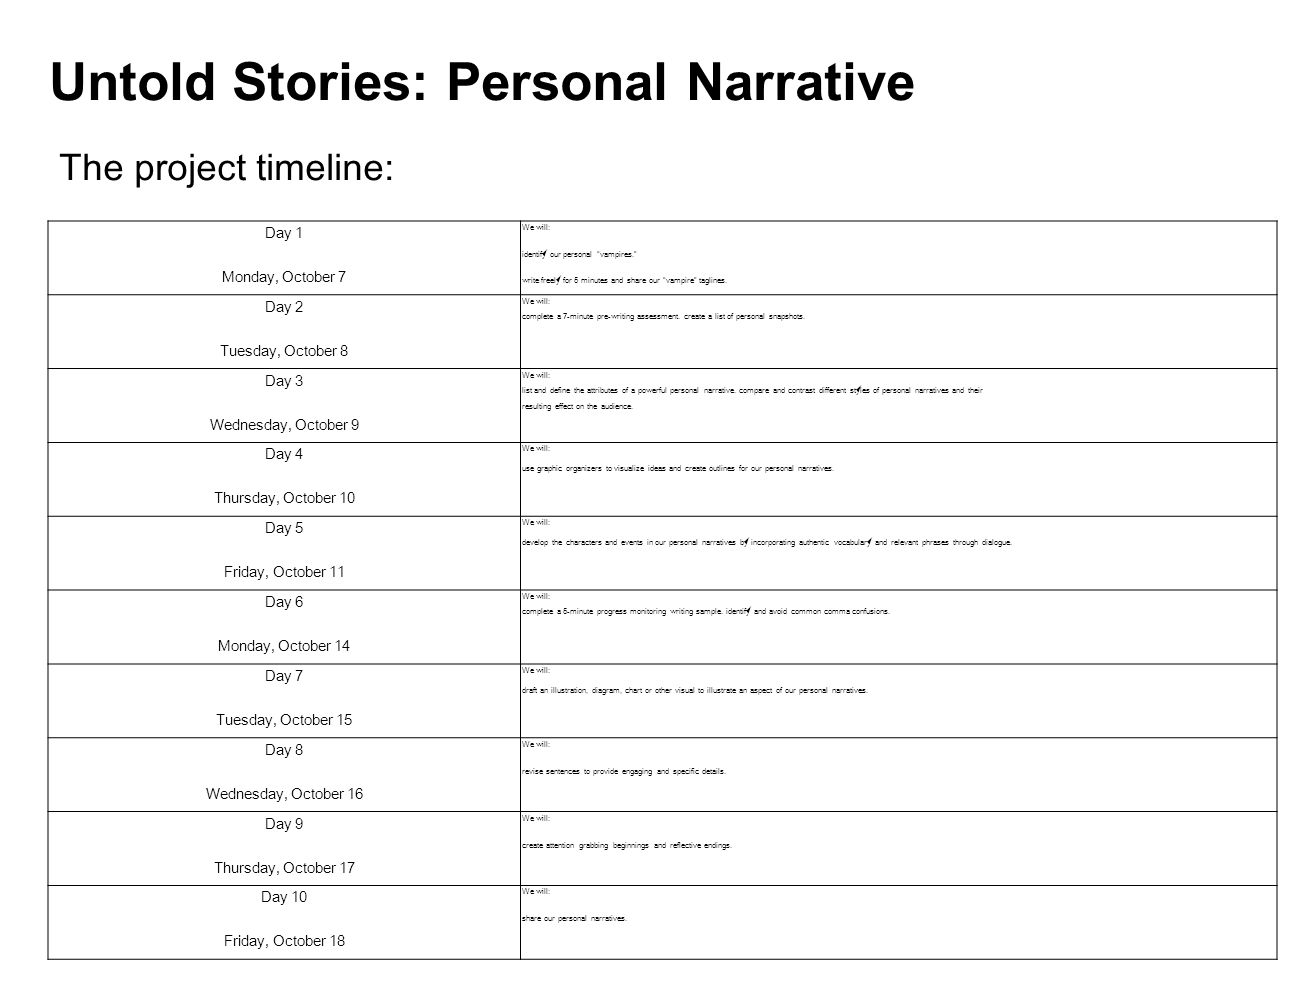 Untold Stories: Personal Narrative